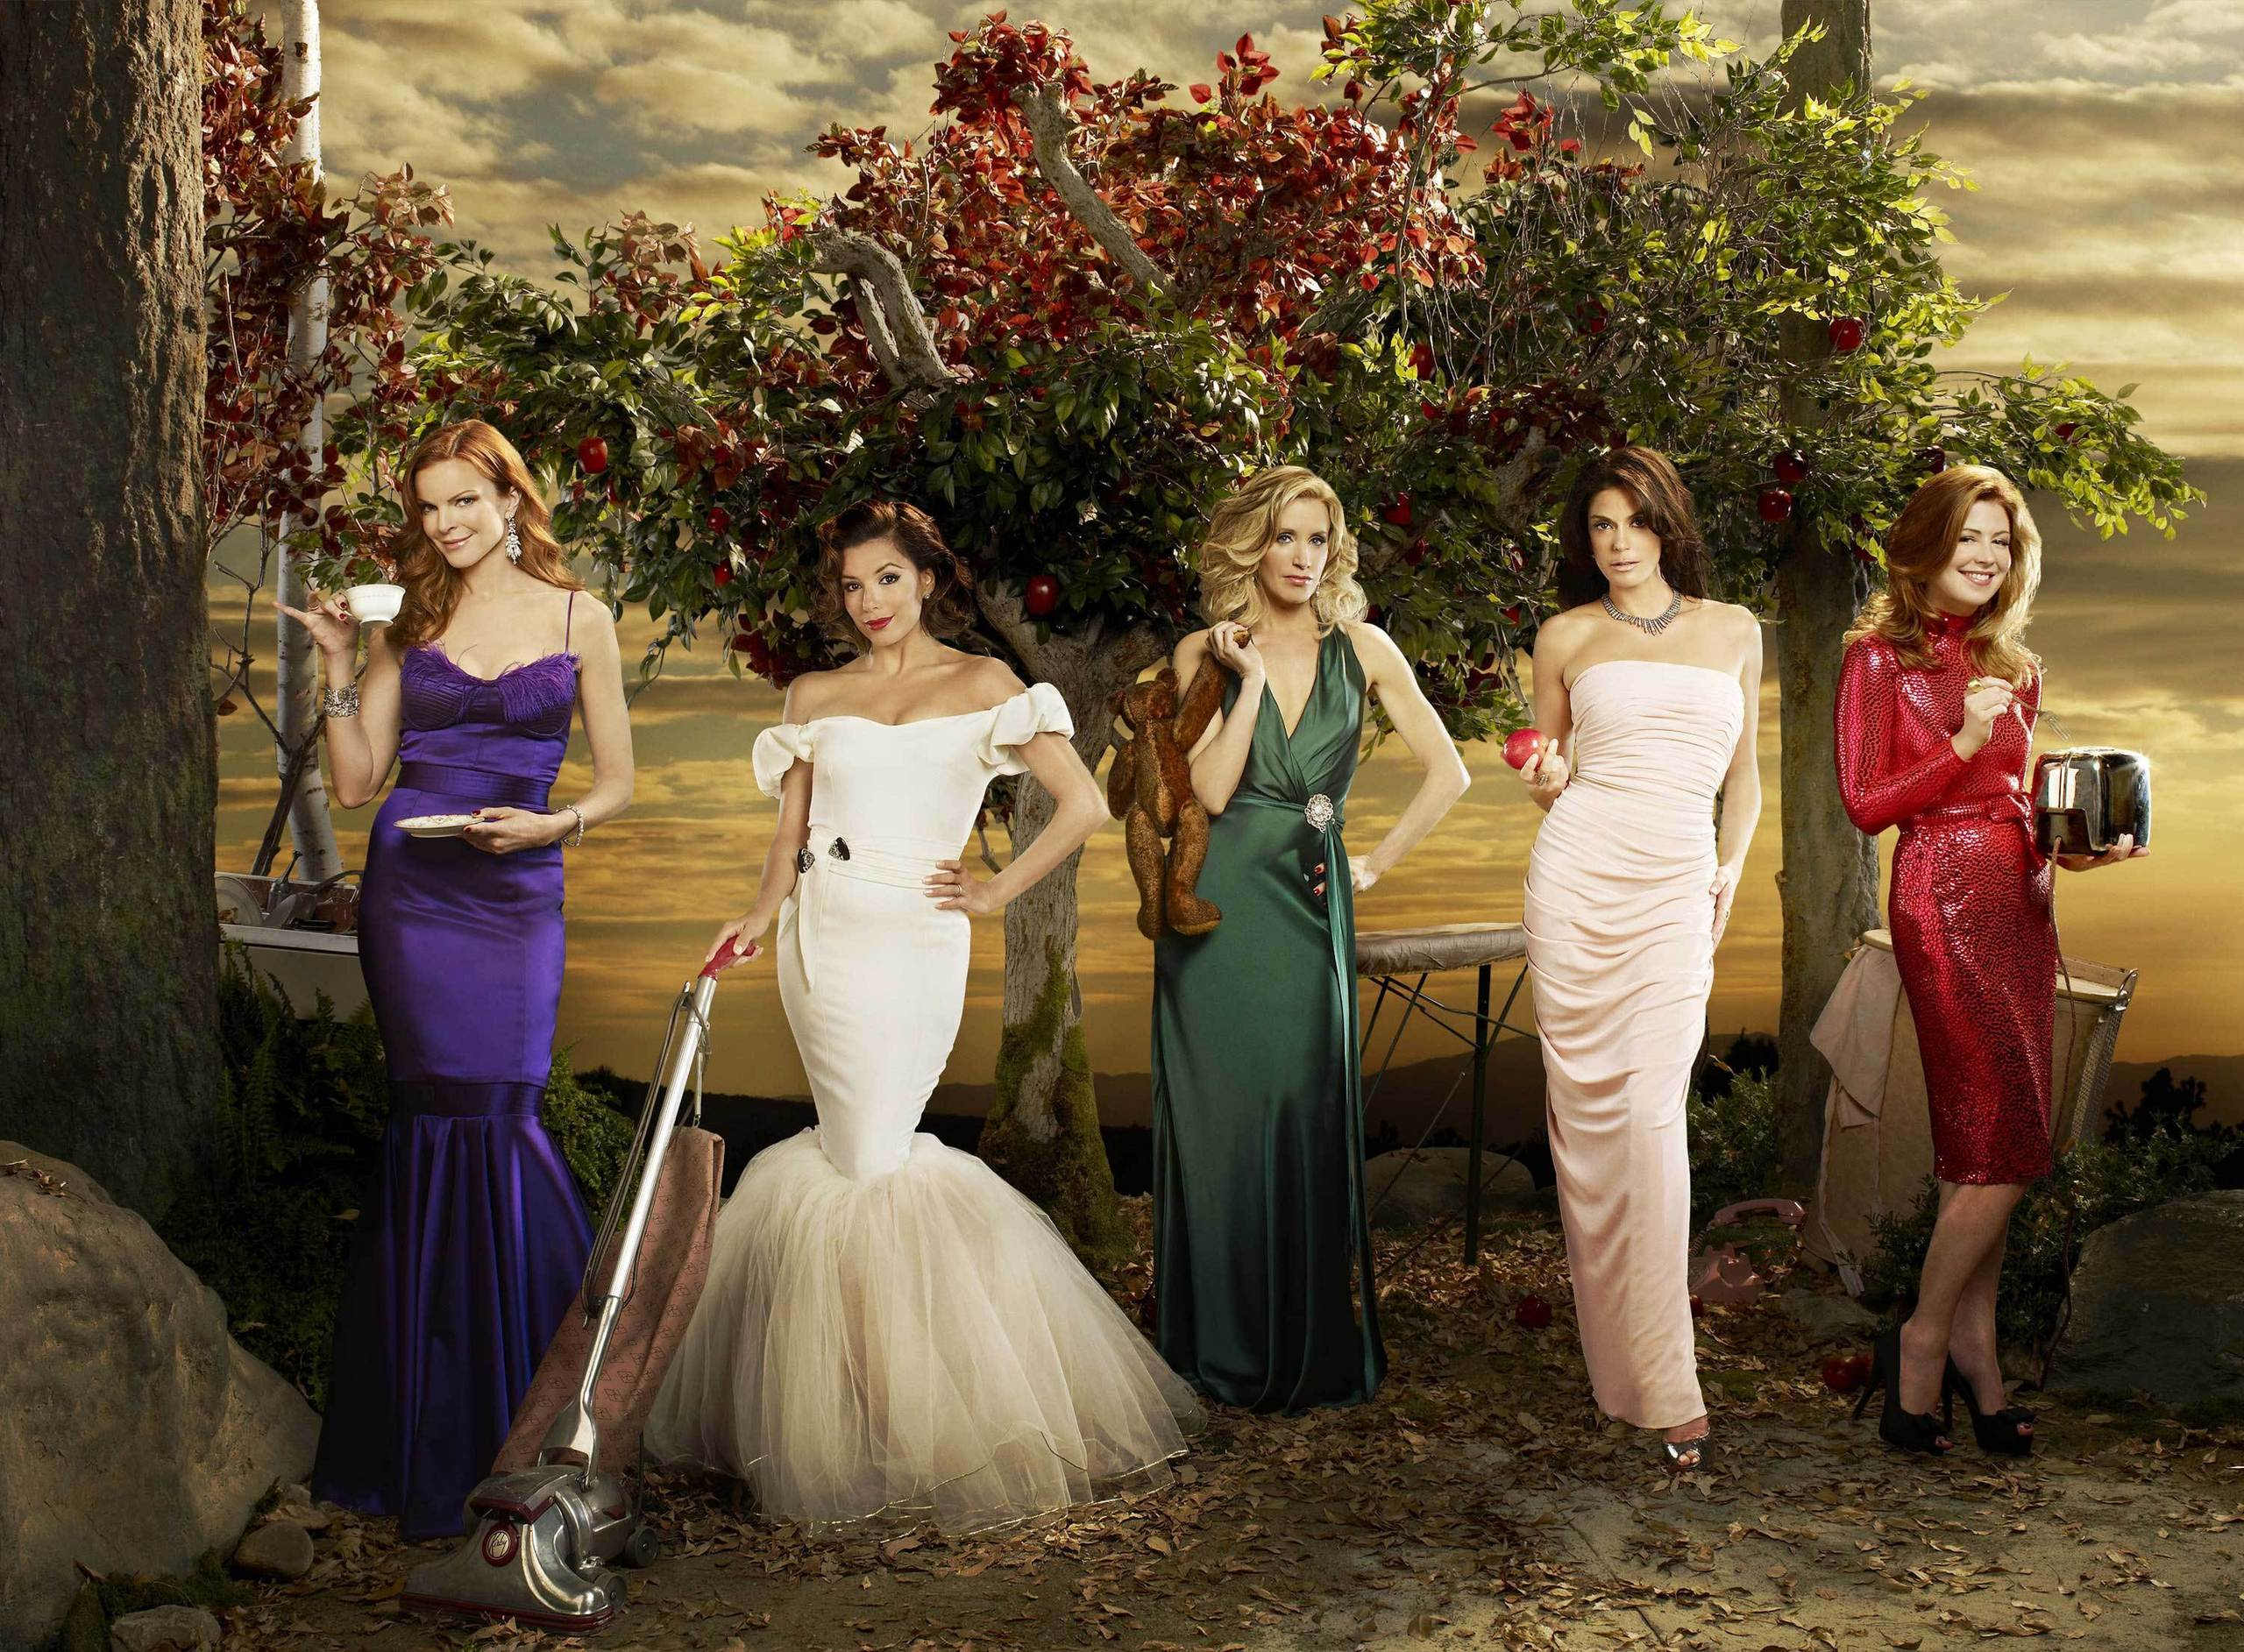 http://images2.fanpop.com/images/photos/8000000/Desperate-Housewives-Season-6-Promo-Cast-Pic-desperate-housewives-8023140-2560-1885.jpg